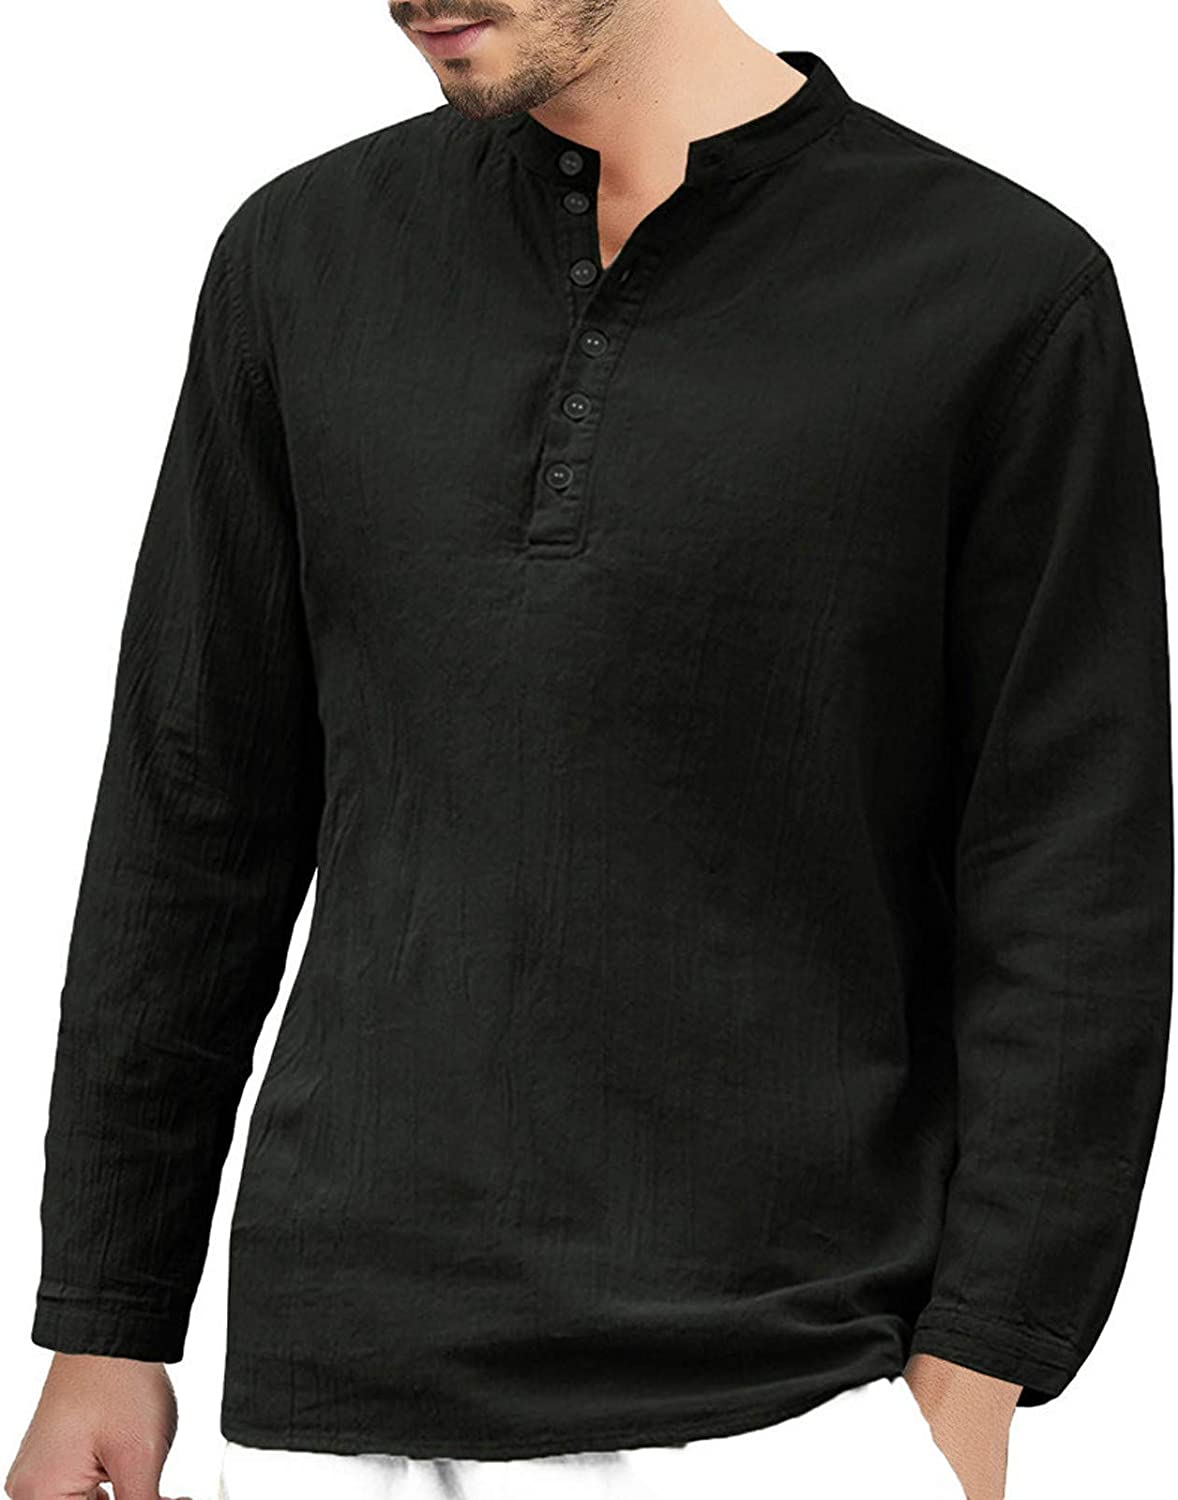 Maryia Men's Henley Shirts Casual Button-Down Up Shirts Long Sleeve Beach Yoga Loose Retro Fit Tops Blouse Black